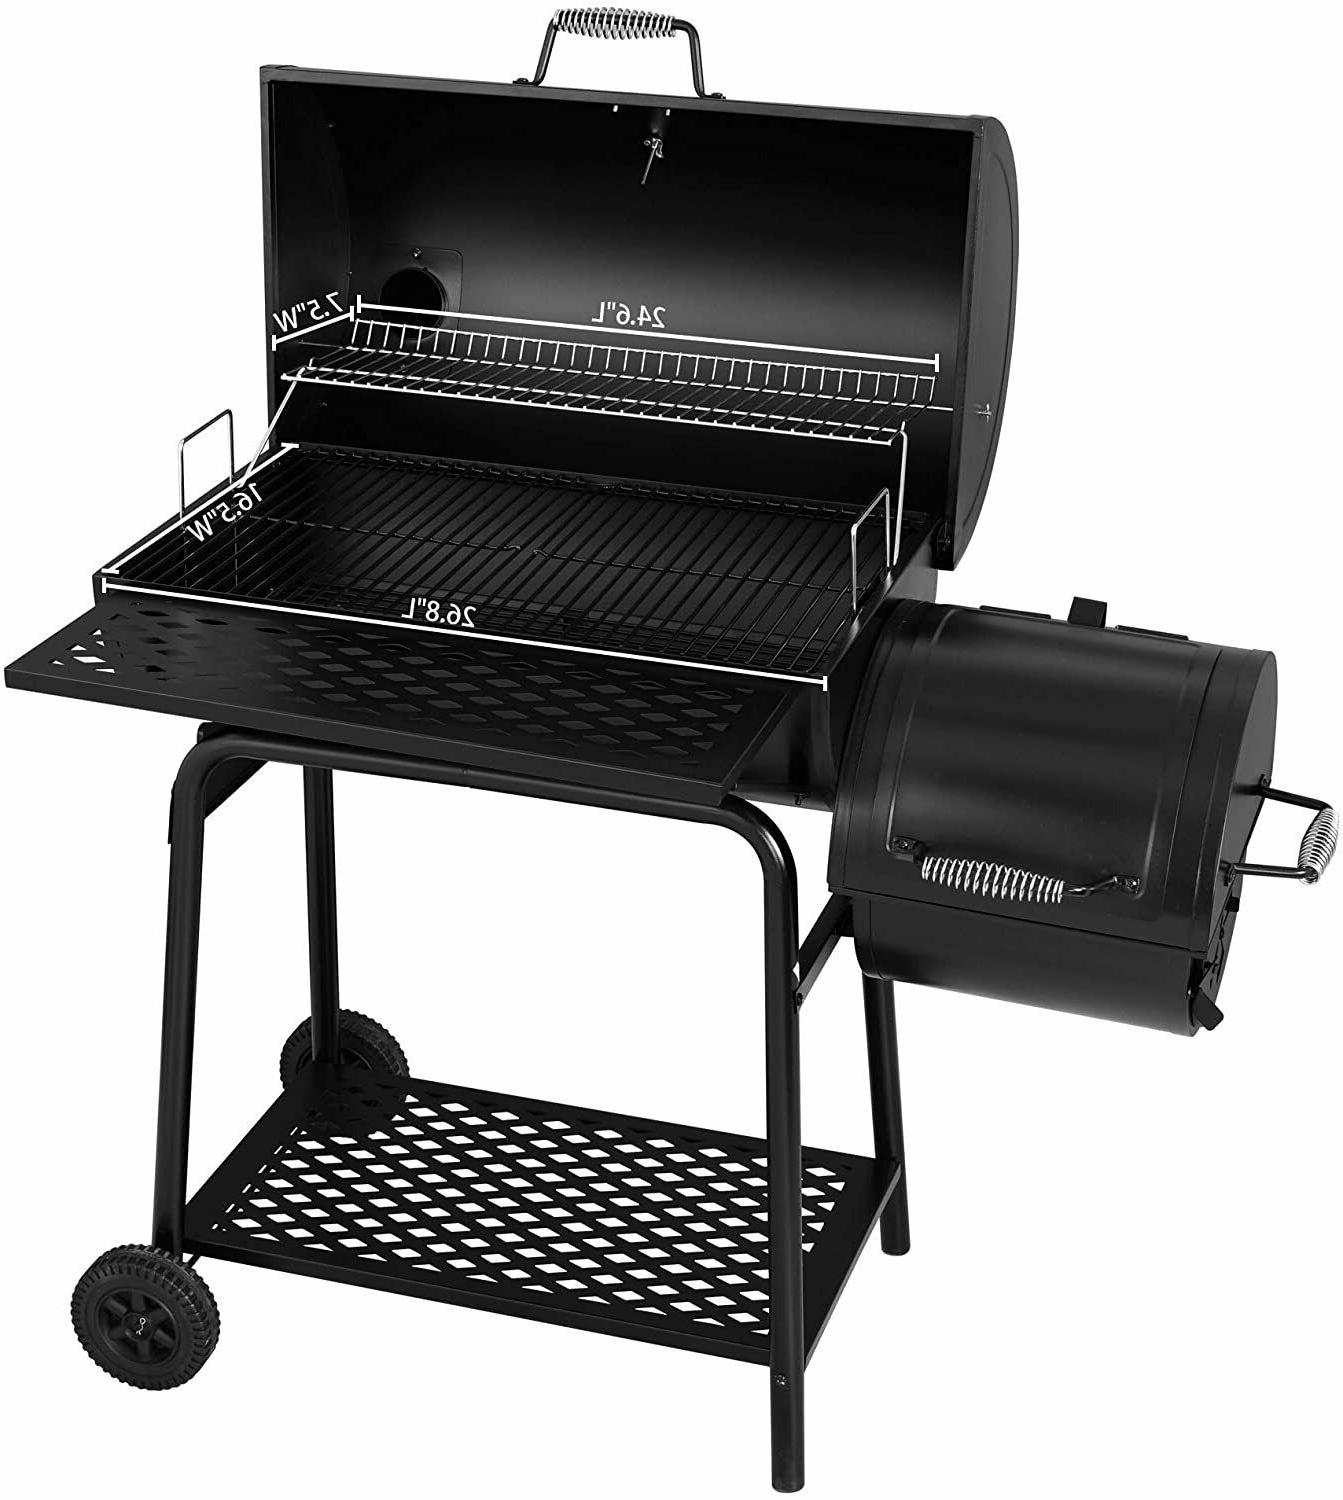 Royal CC1830F Grill with Offset Smoker, Black